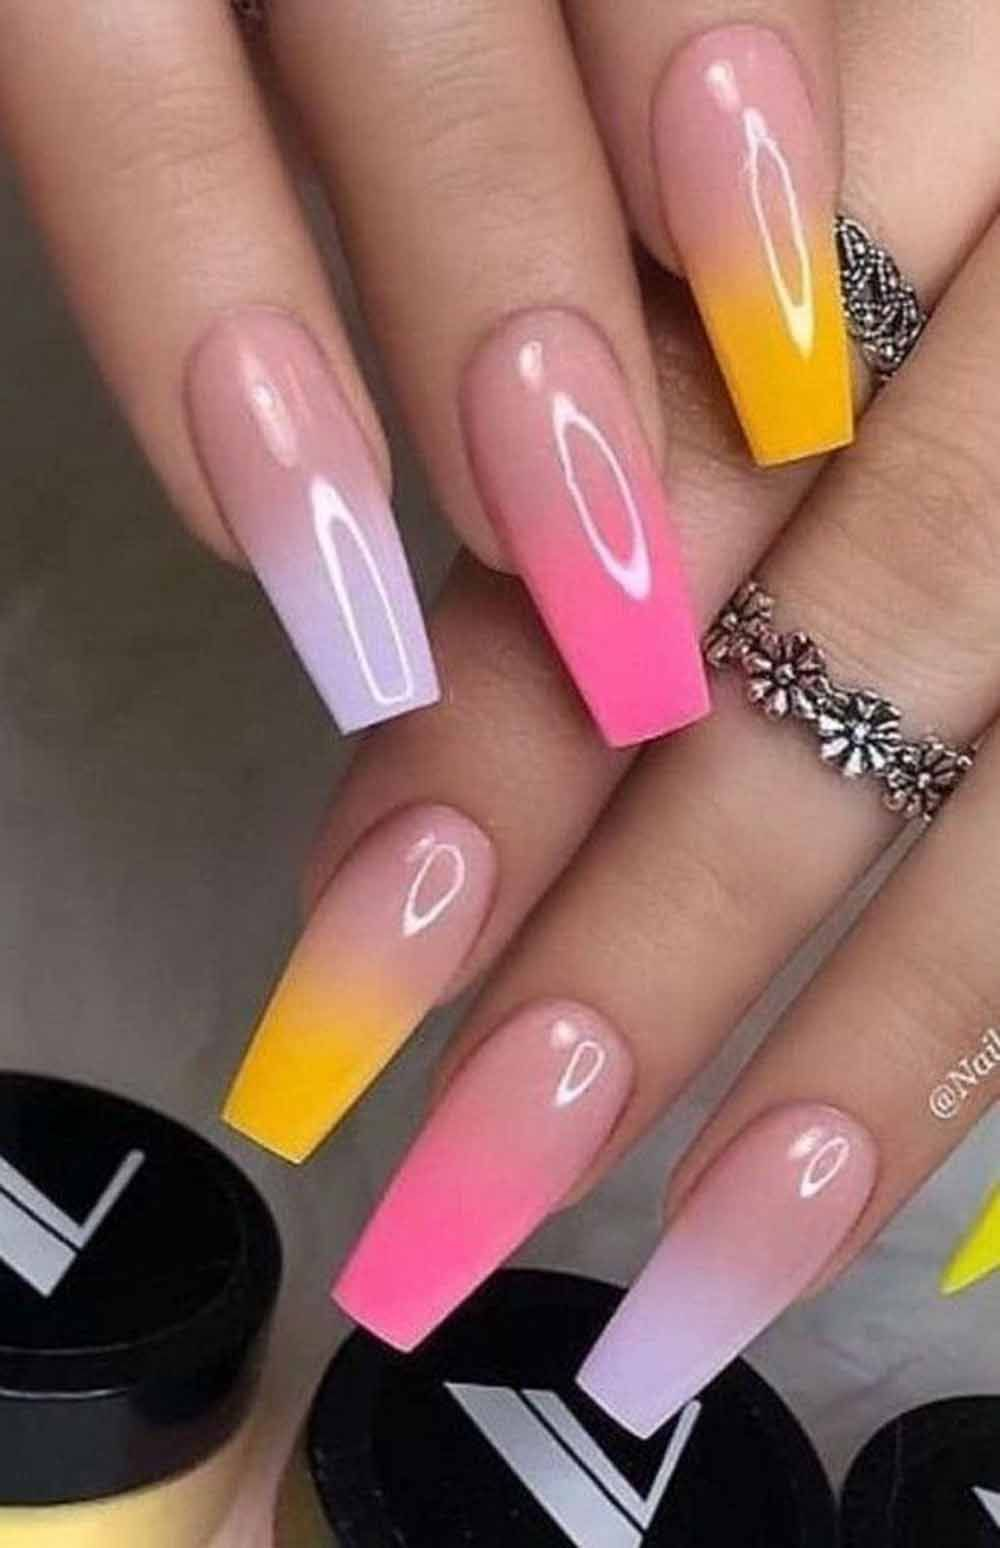 All About Nail Designs And Nail Art In 2020 Ombre Acrylic Nails Best Acrylic Nails Summer Nails Colors